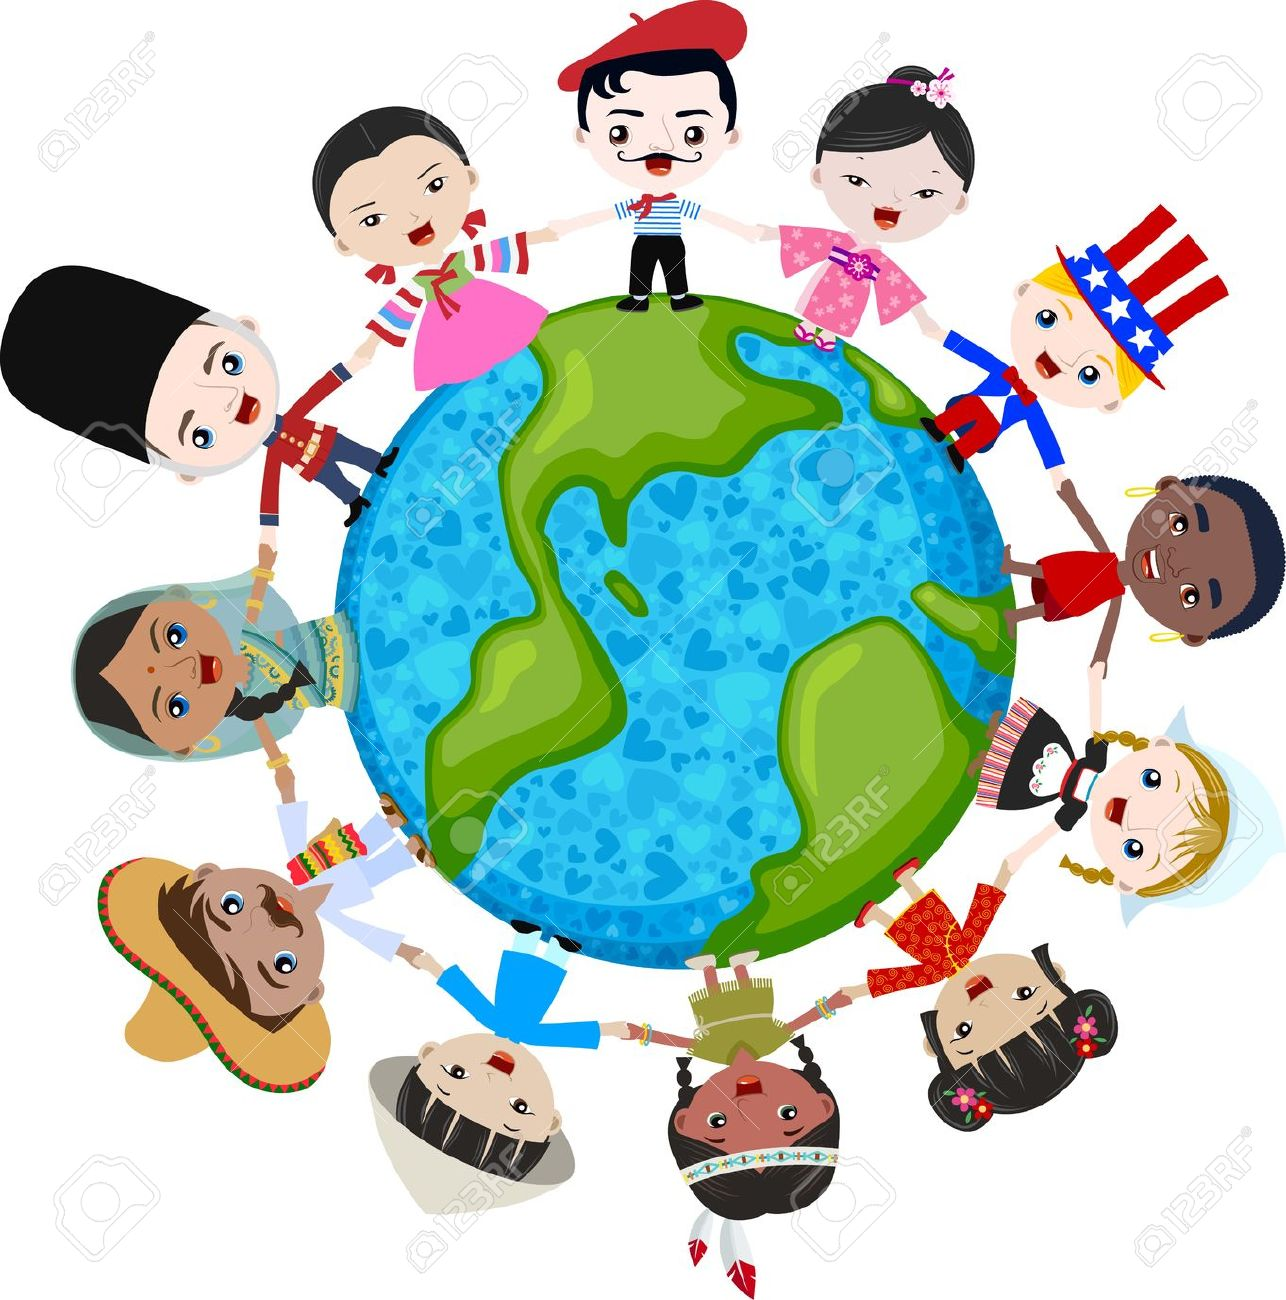 Multicultural World Clipart